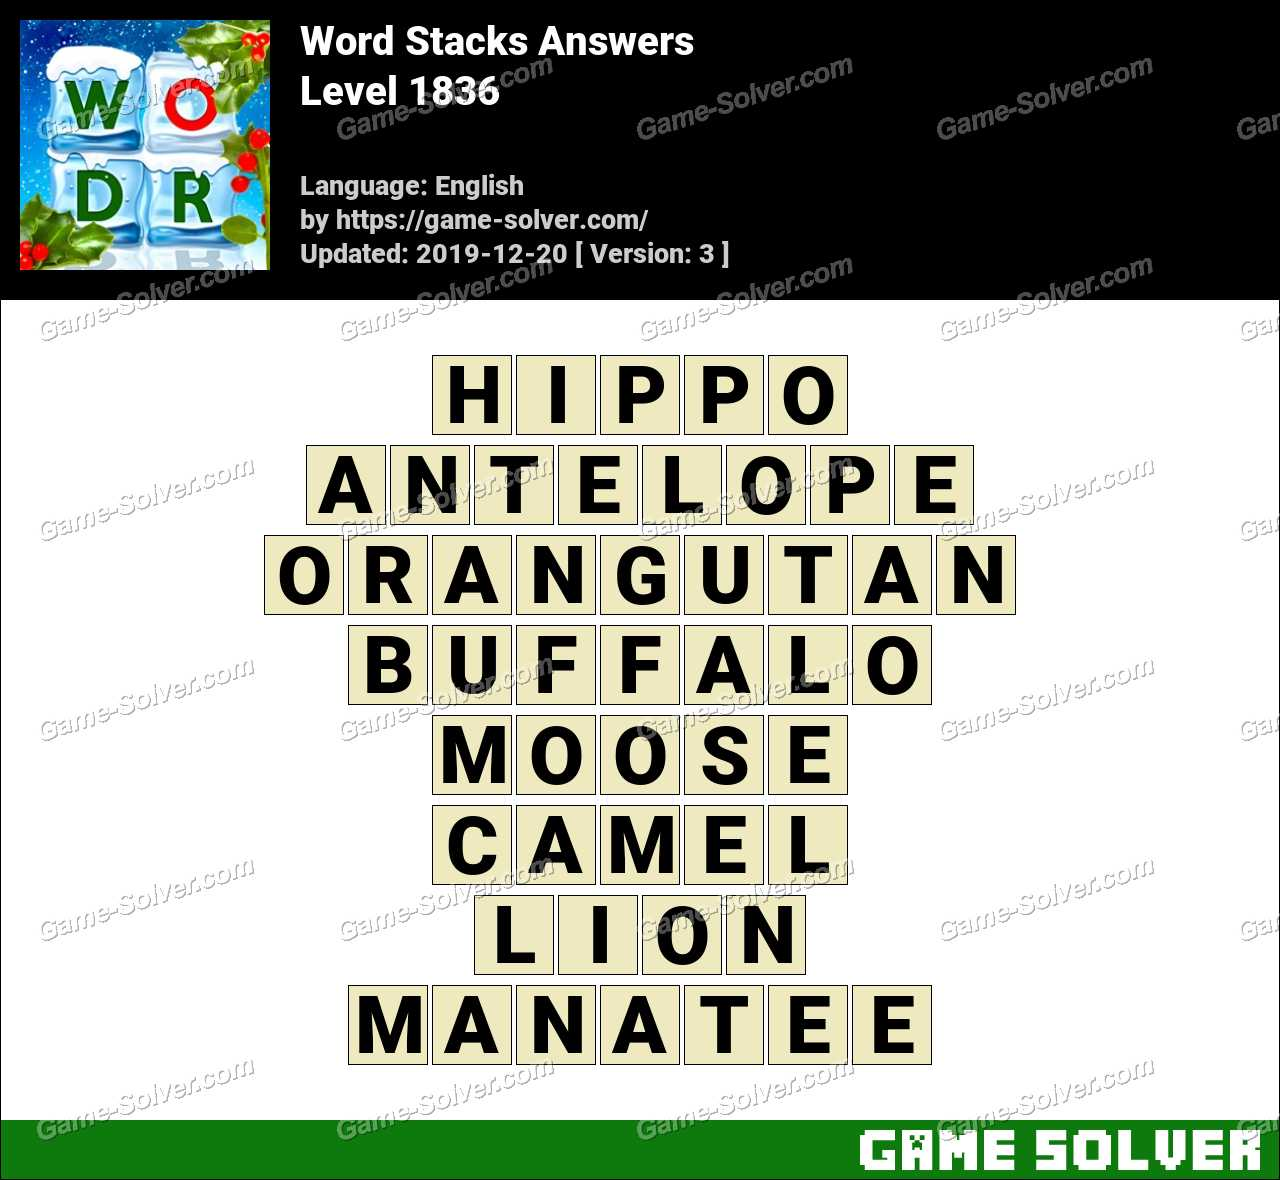 Word Stacks Level 1836 Answers